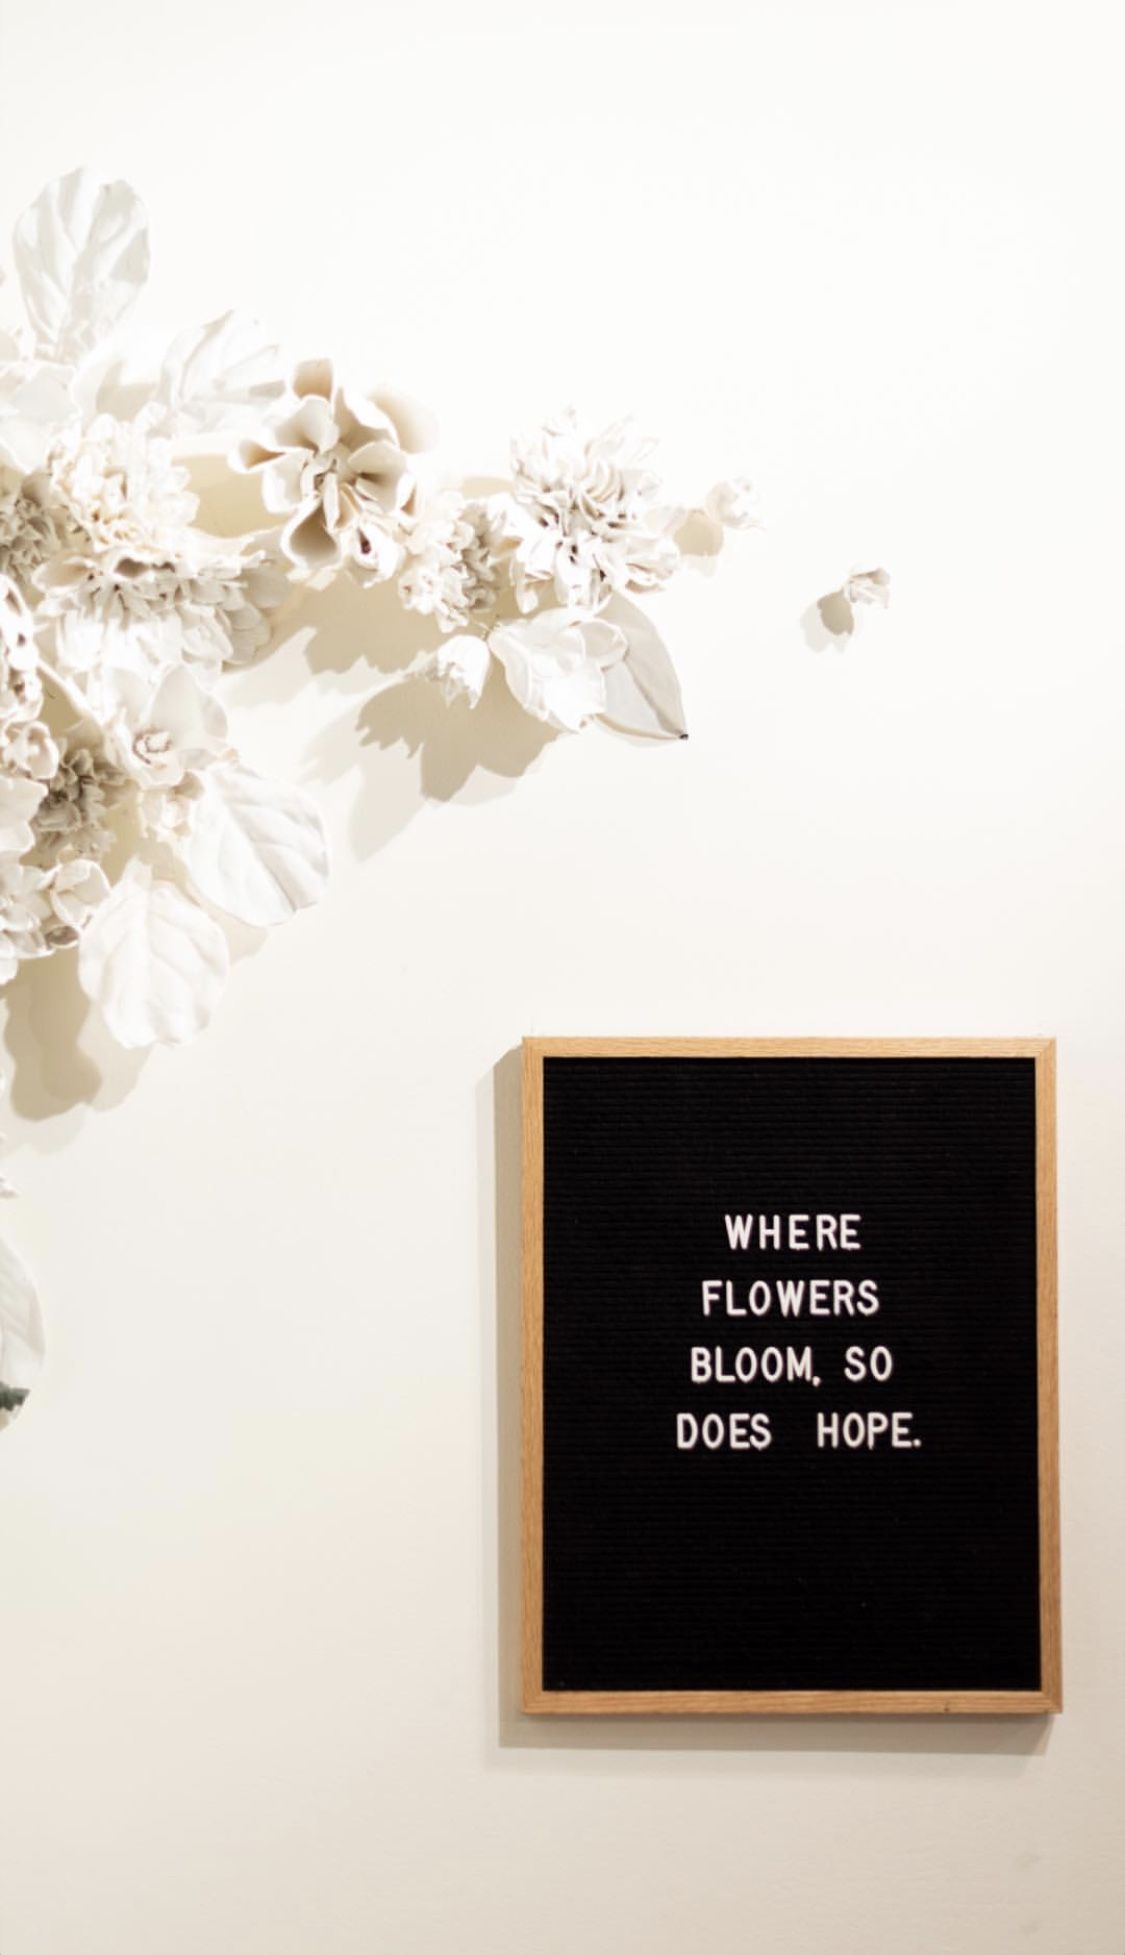 Where Flowers Bloom So Does Hope Quotes About Flowers Blooming Bloom Quotes Flower Quotes